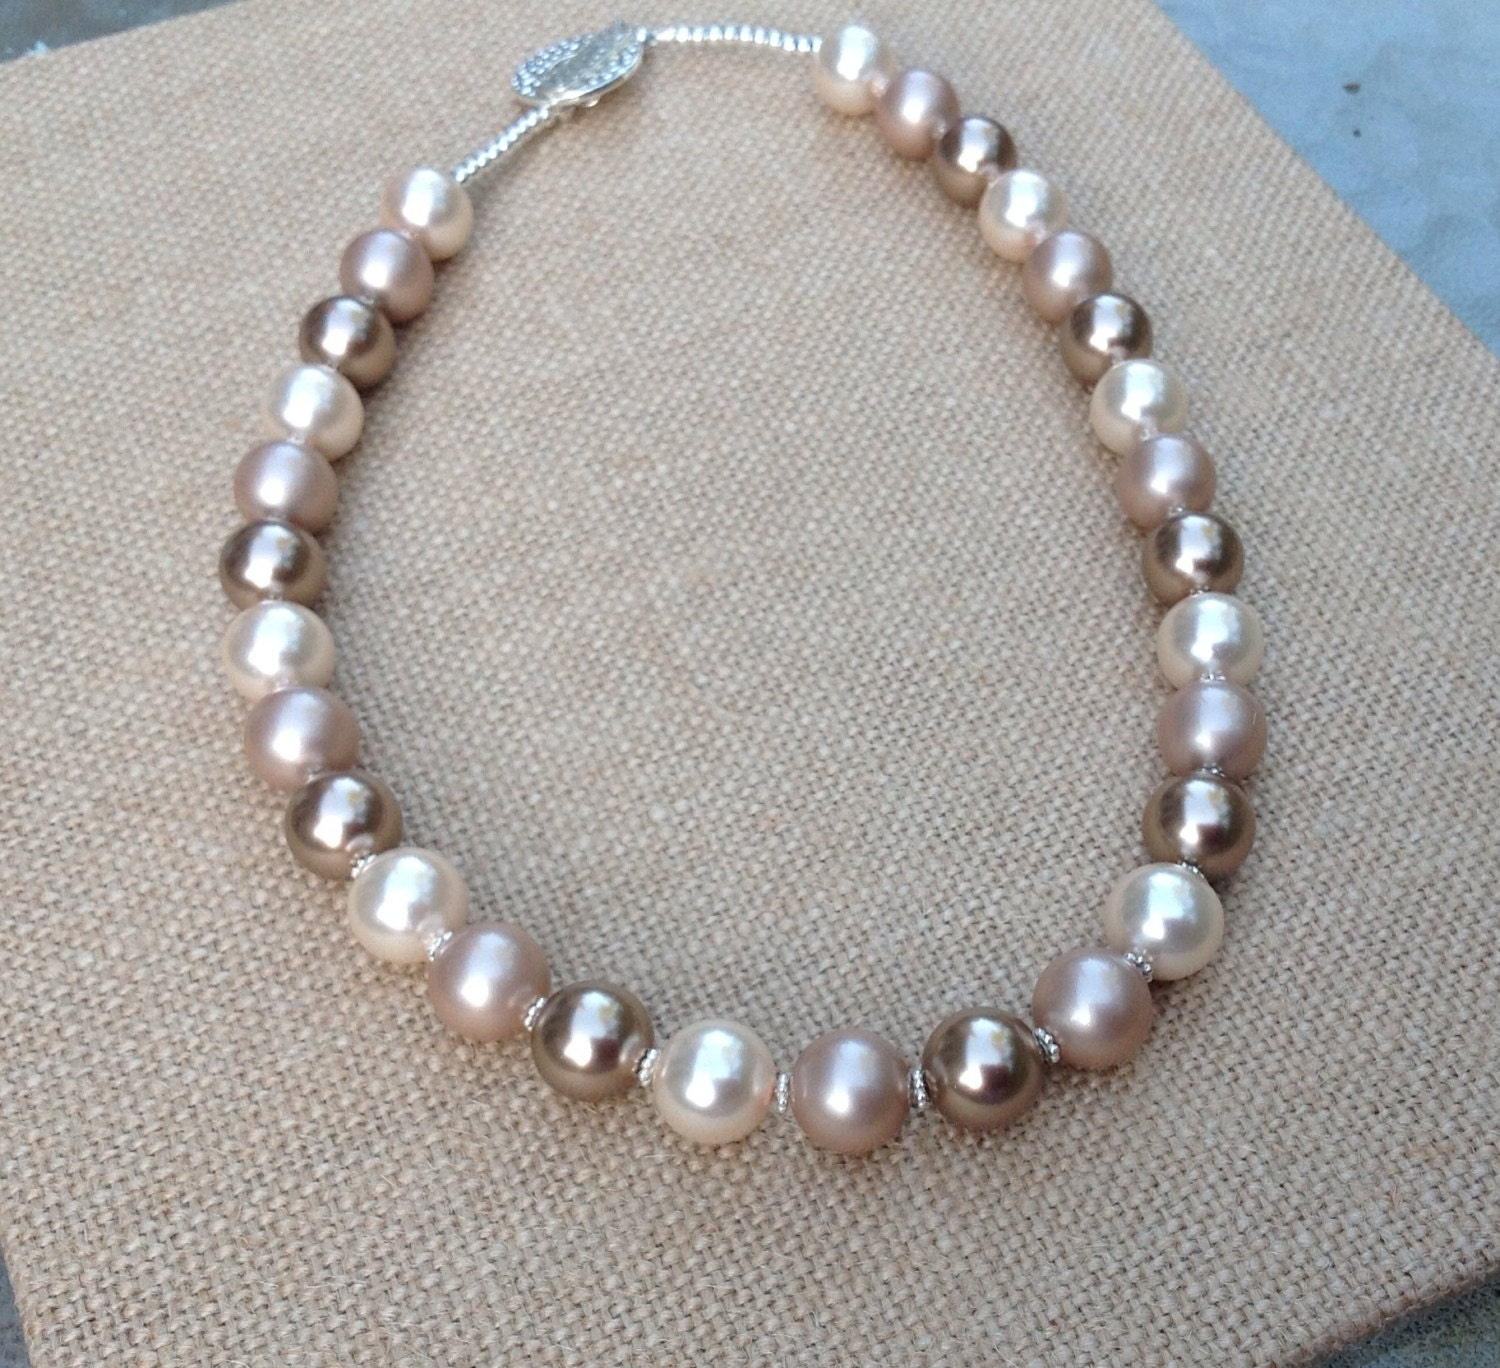 Peach Pearl Necklace: Three Color Pearl Necklace. Peach Almond Bronze. Warm Fall